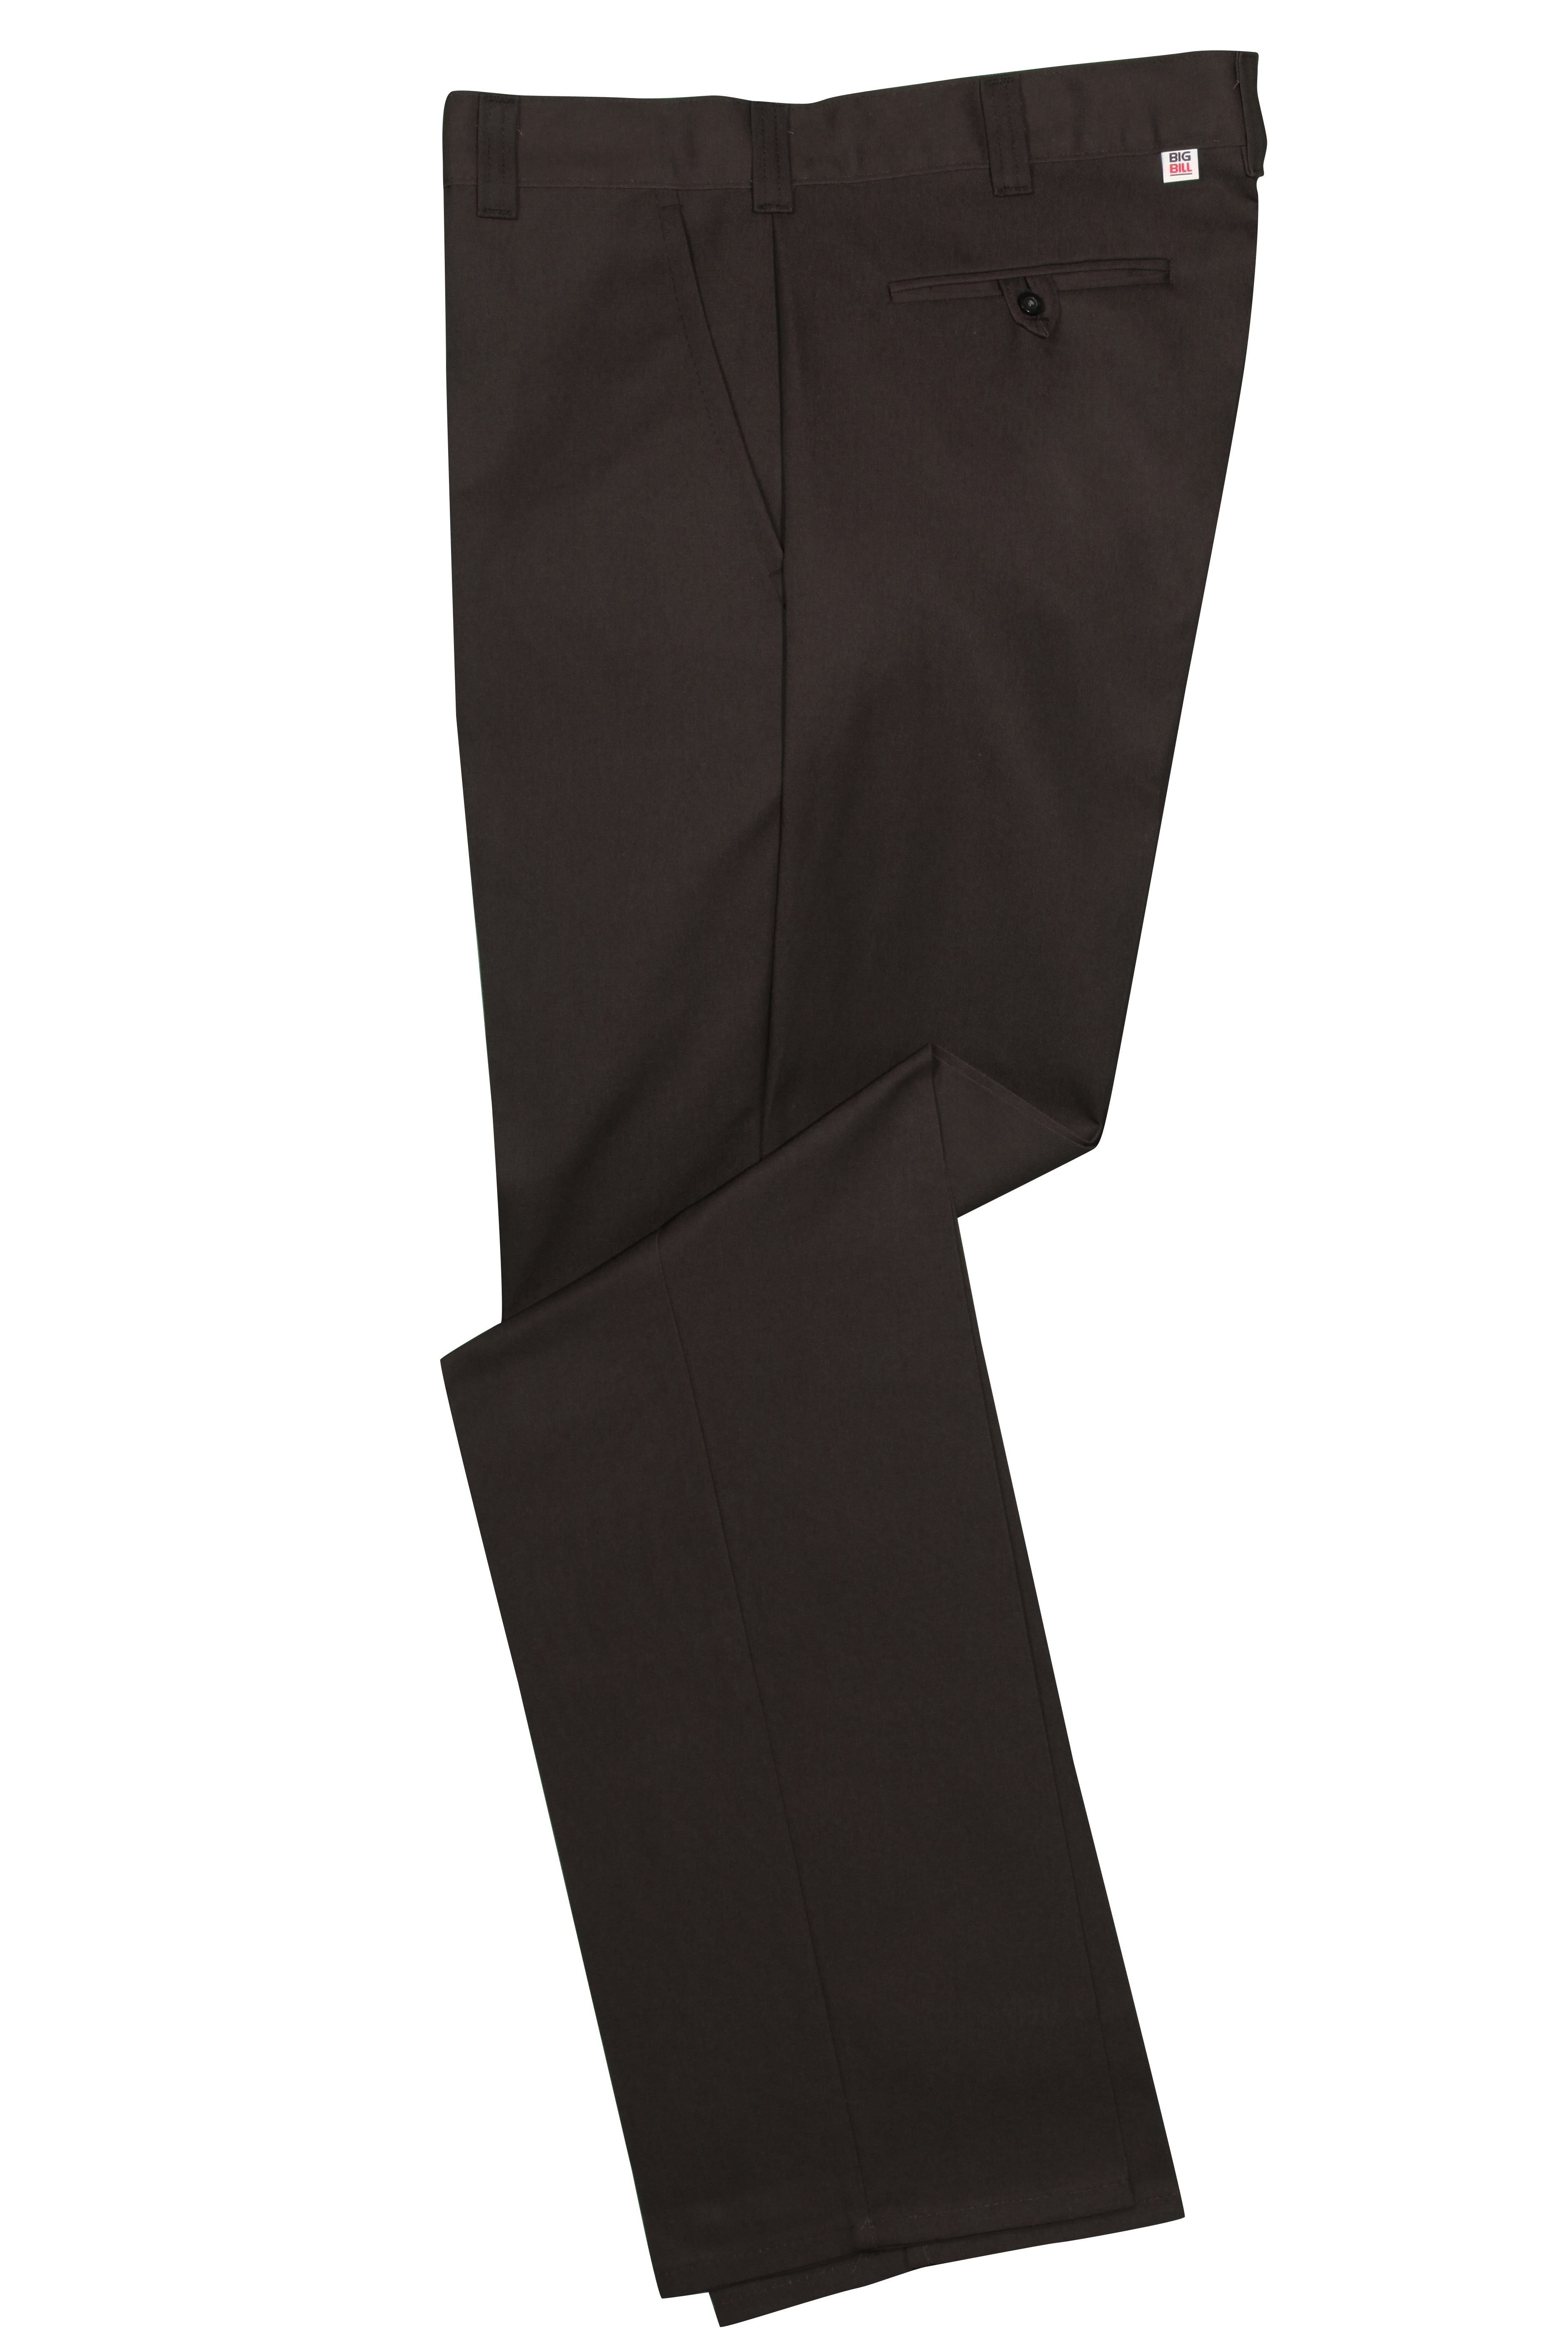 7.5 oz Low Rise Work Pant-BIG BILL